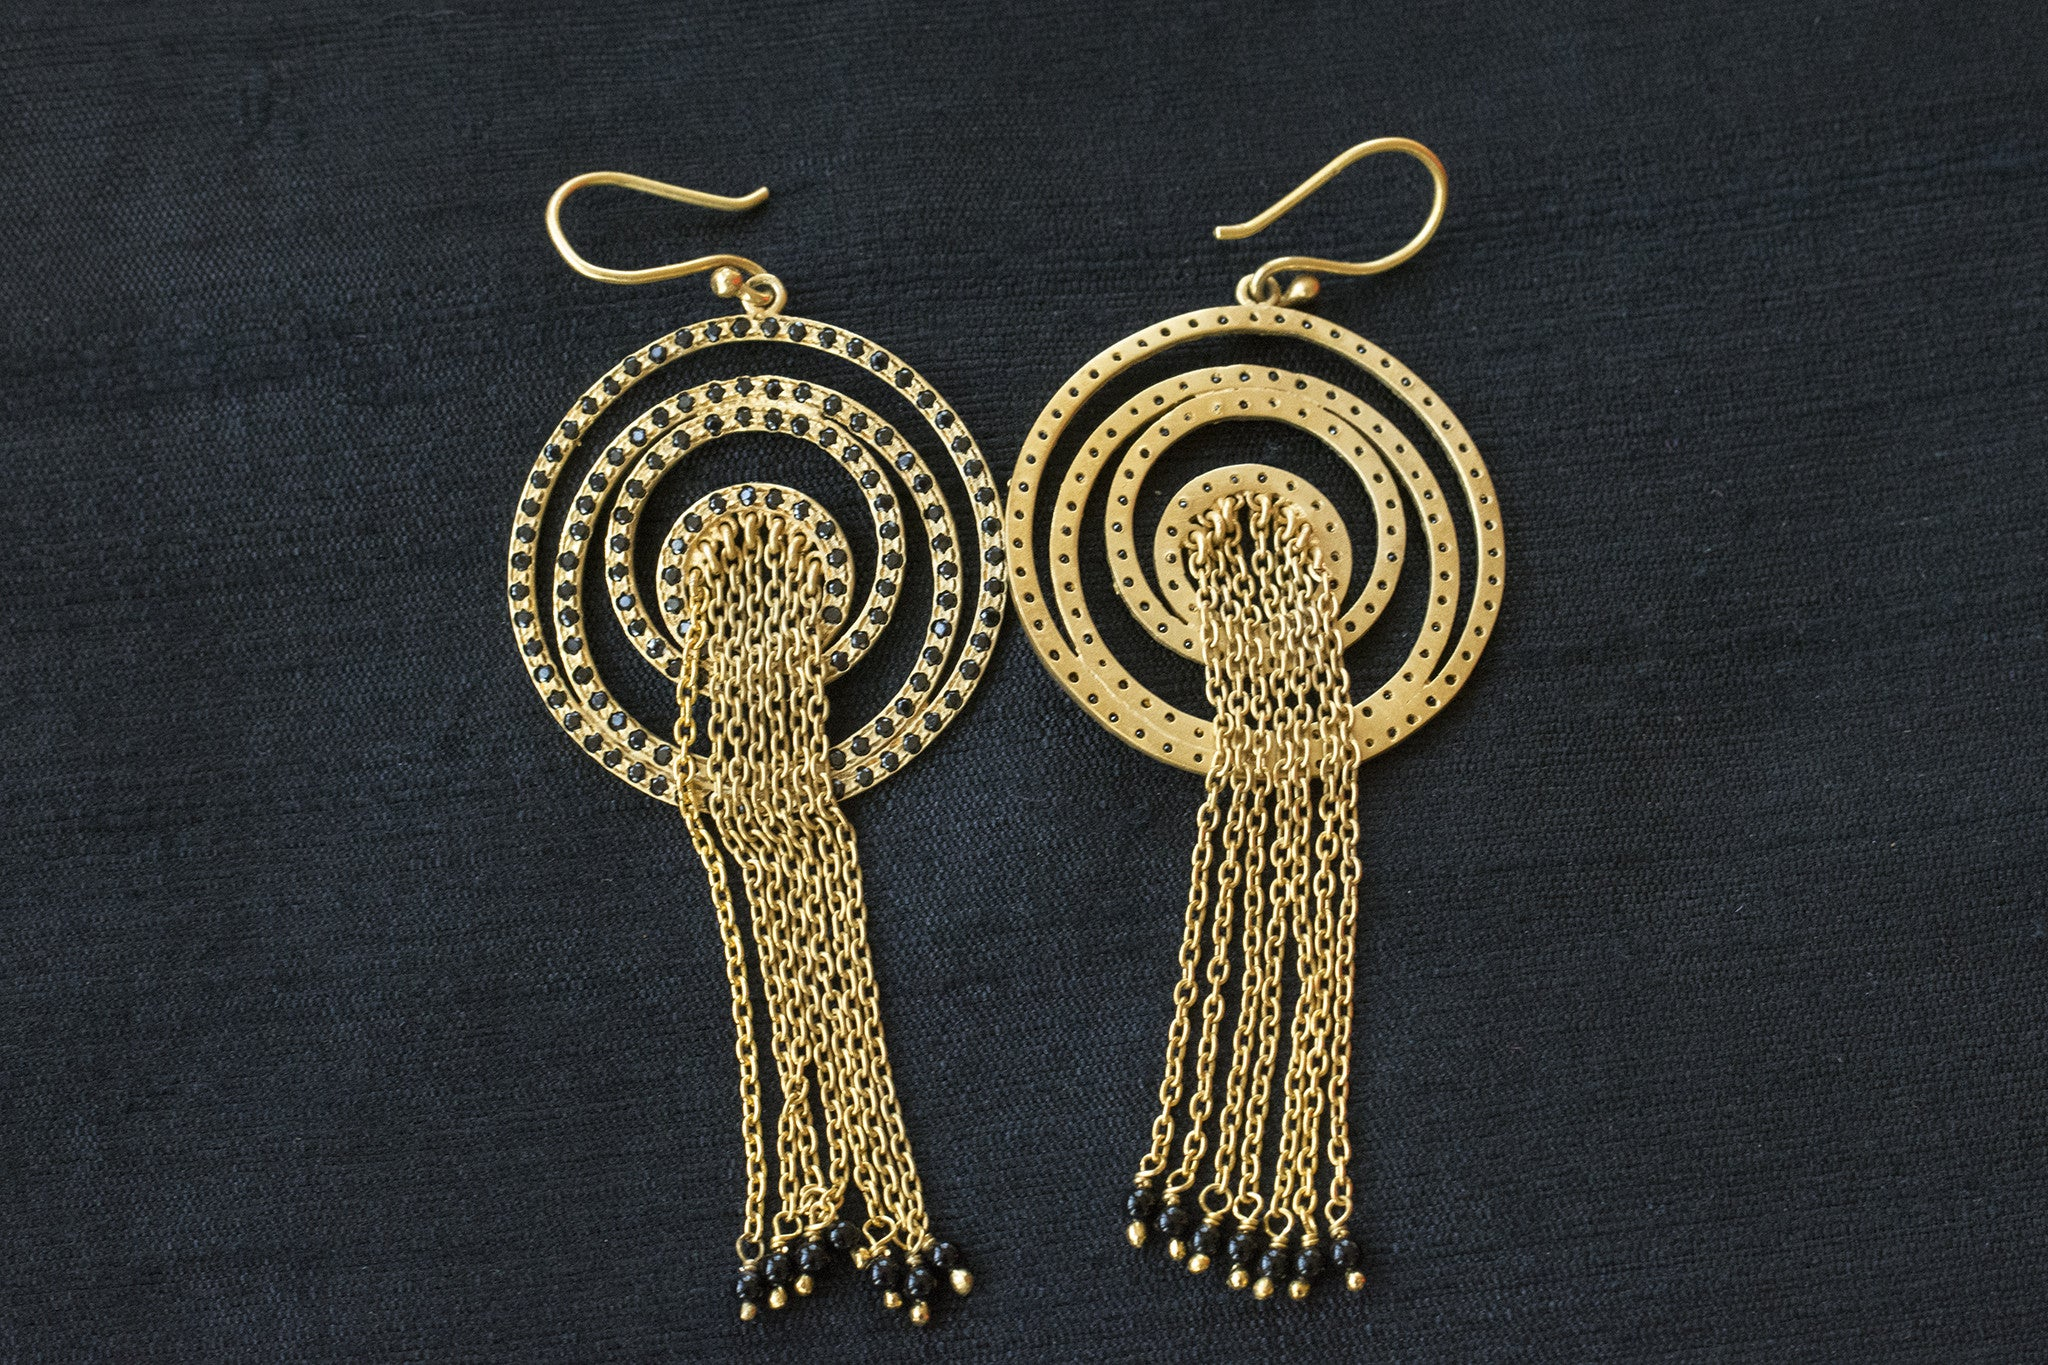 20a158-silver-gold-plated-amrapali-earrings-circular-zircon-drop-bead